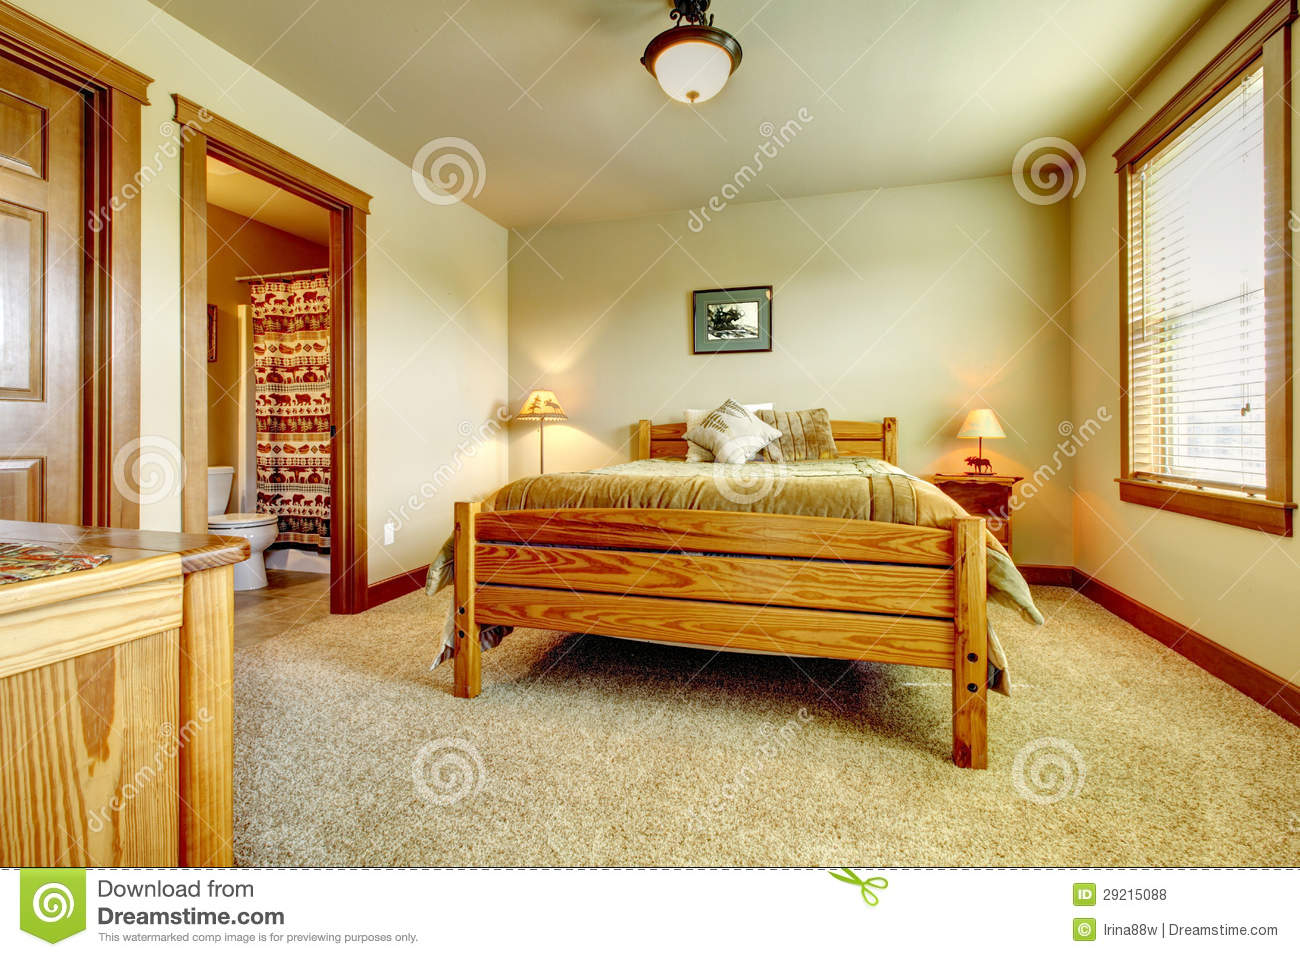 Natural Cabin Farm House Bedroom With Beige Carpet And Green Walls Stock Photo Image